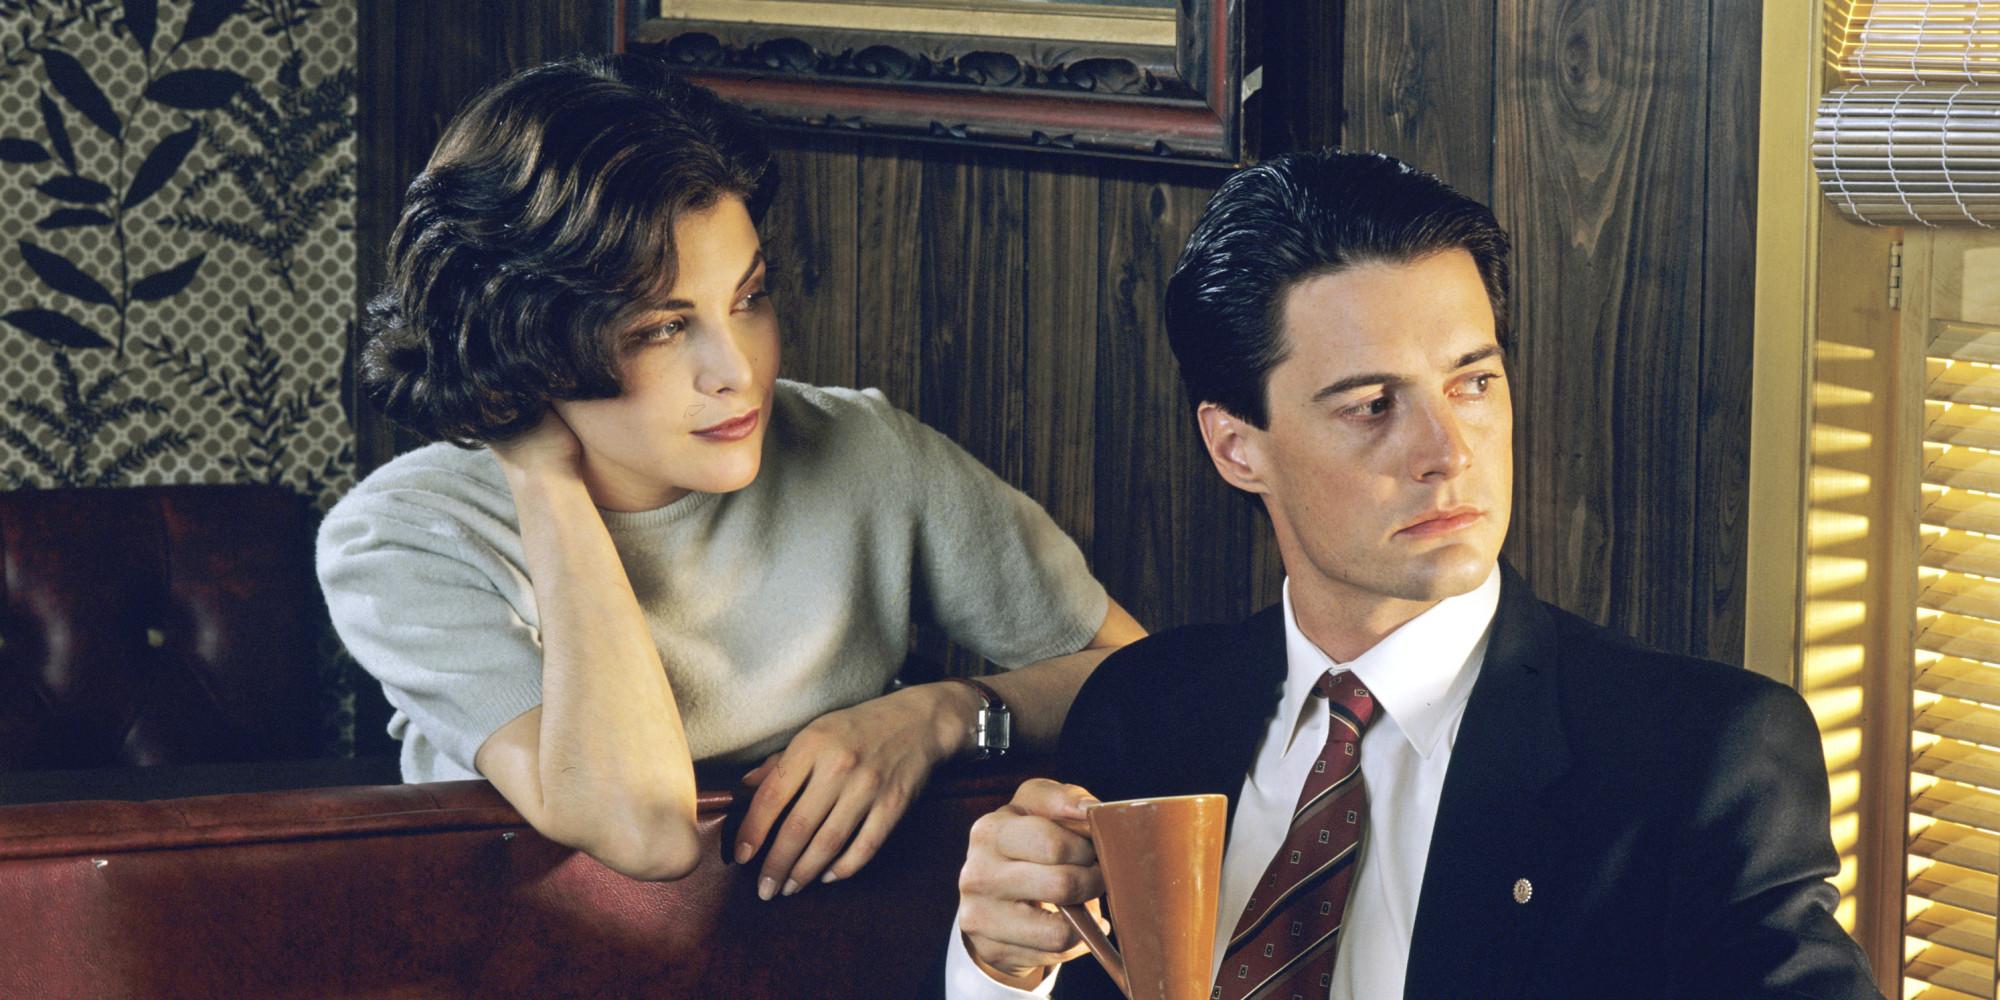 'Twin Peaks' is Going to Come Back in Style